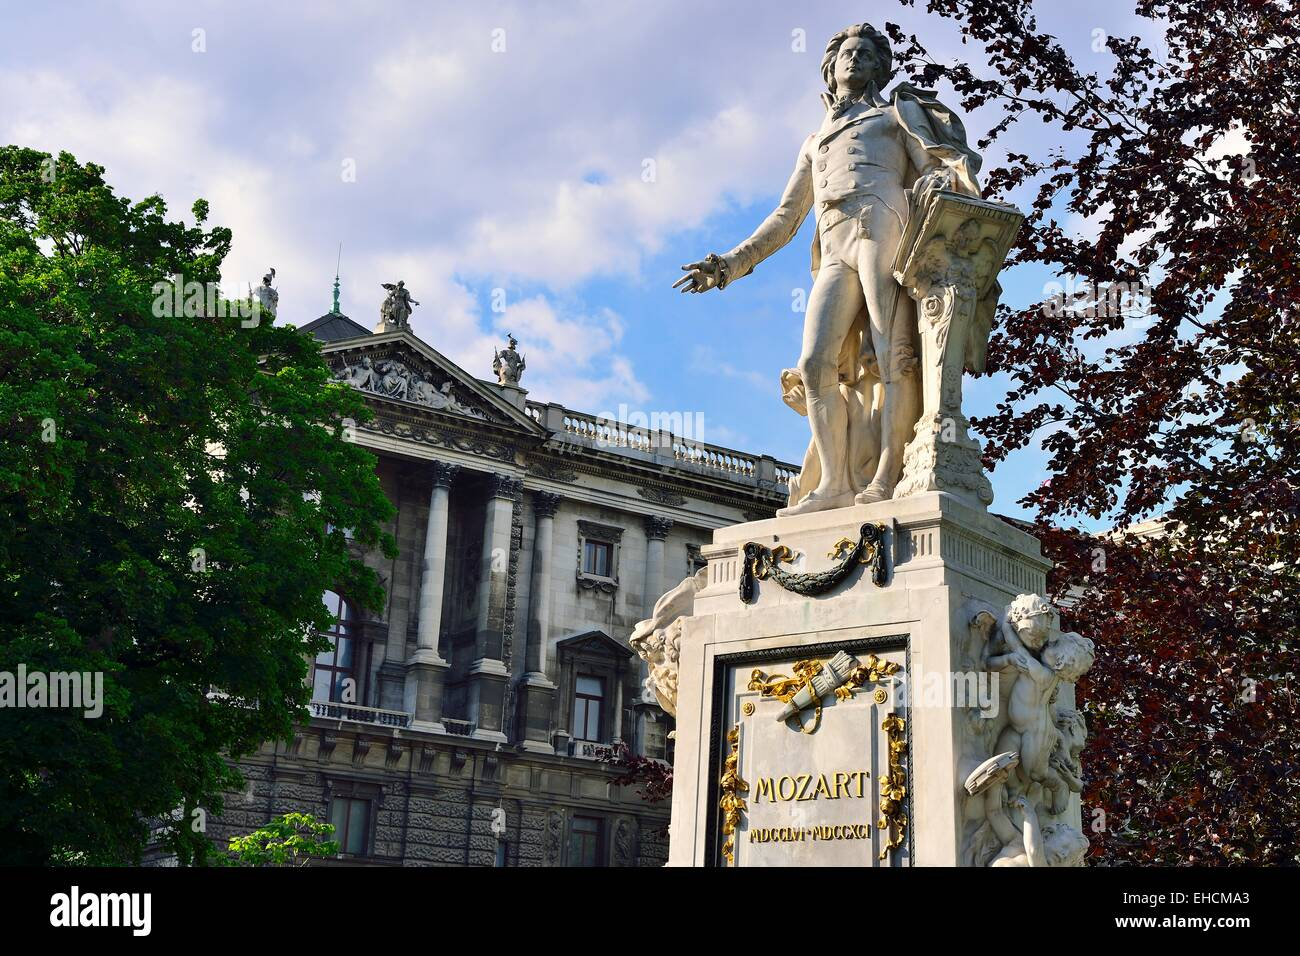 Monument to Wolfgang Amadeus Mozart in the Imperial Castle Garden, Innere Stadt district, Vienna, Austria - Stock Image